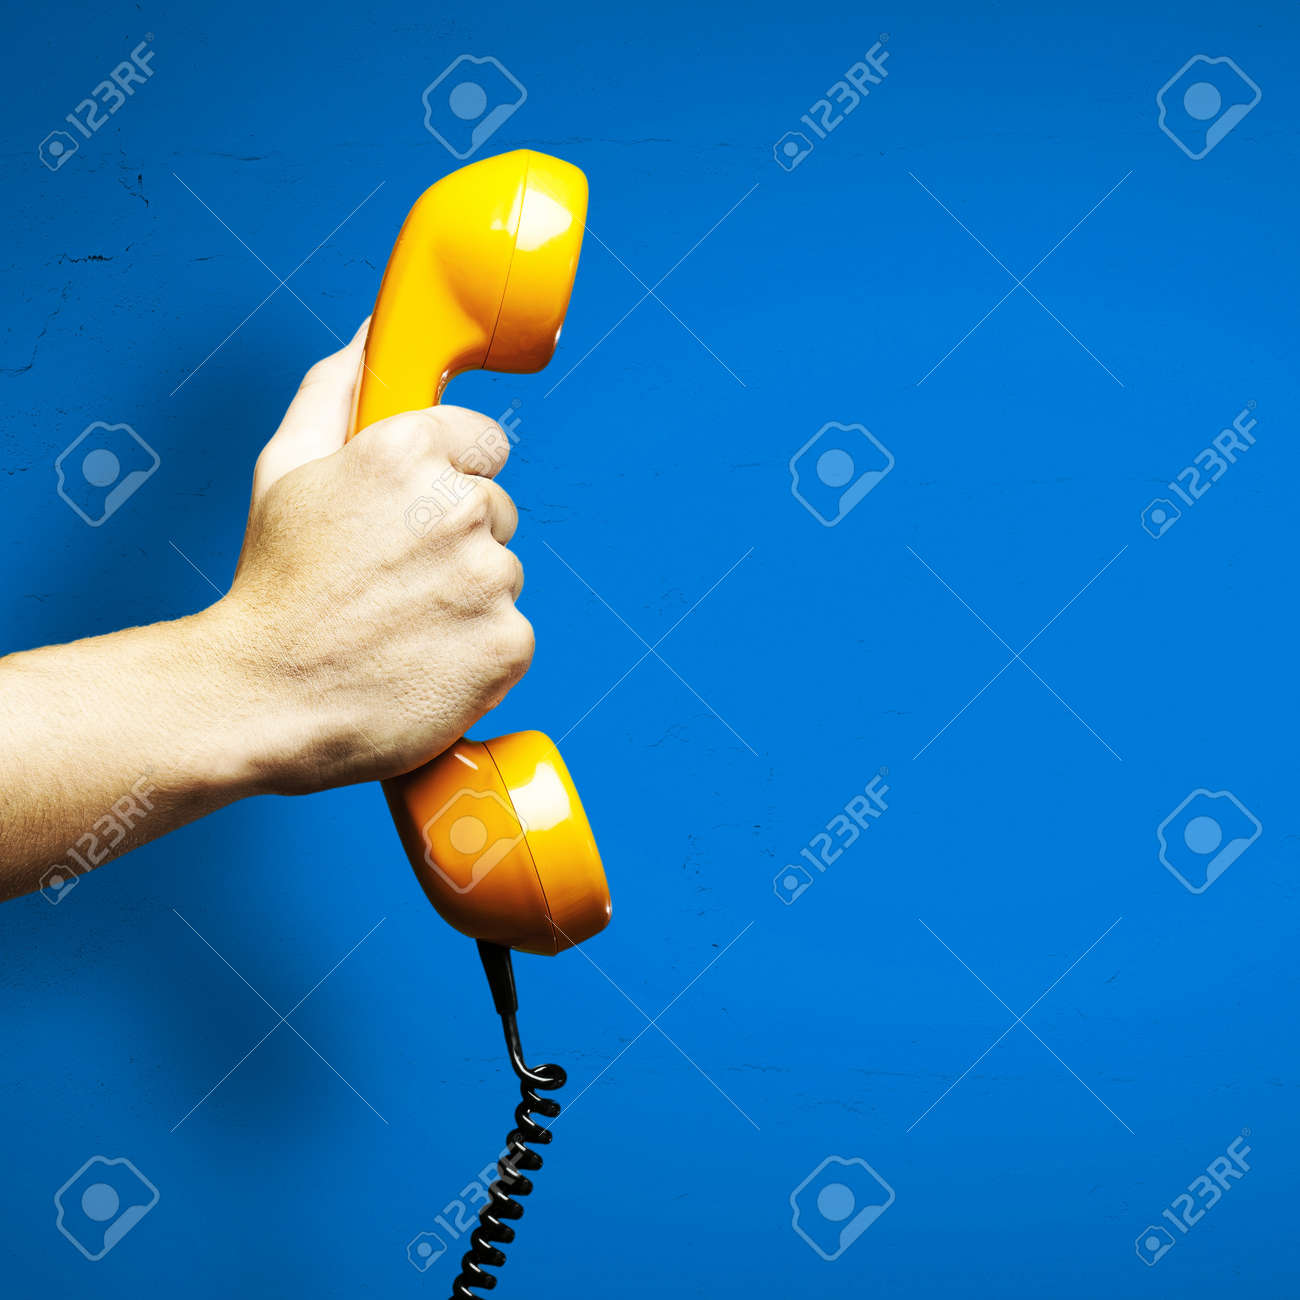 Hand holding vintage telephone receiver isolated over blue background - 11232266